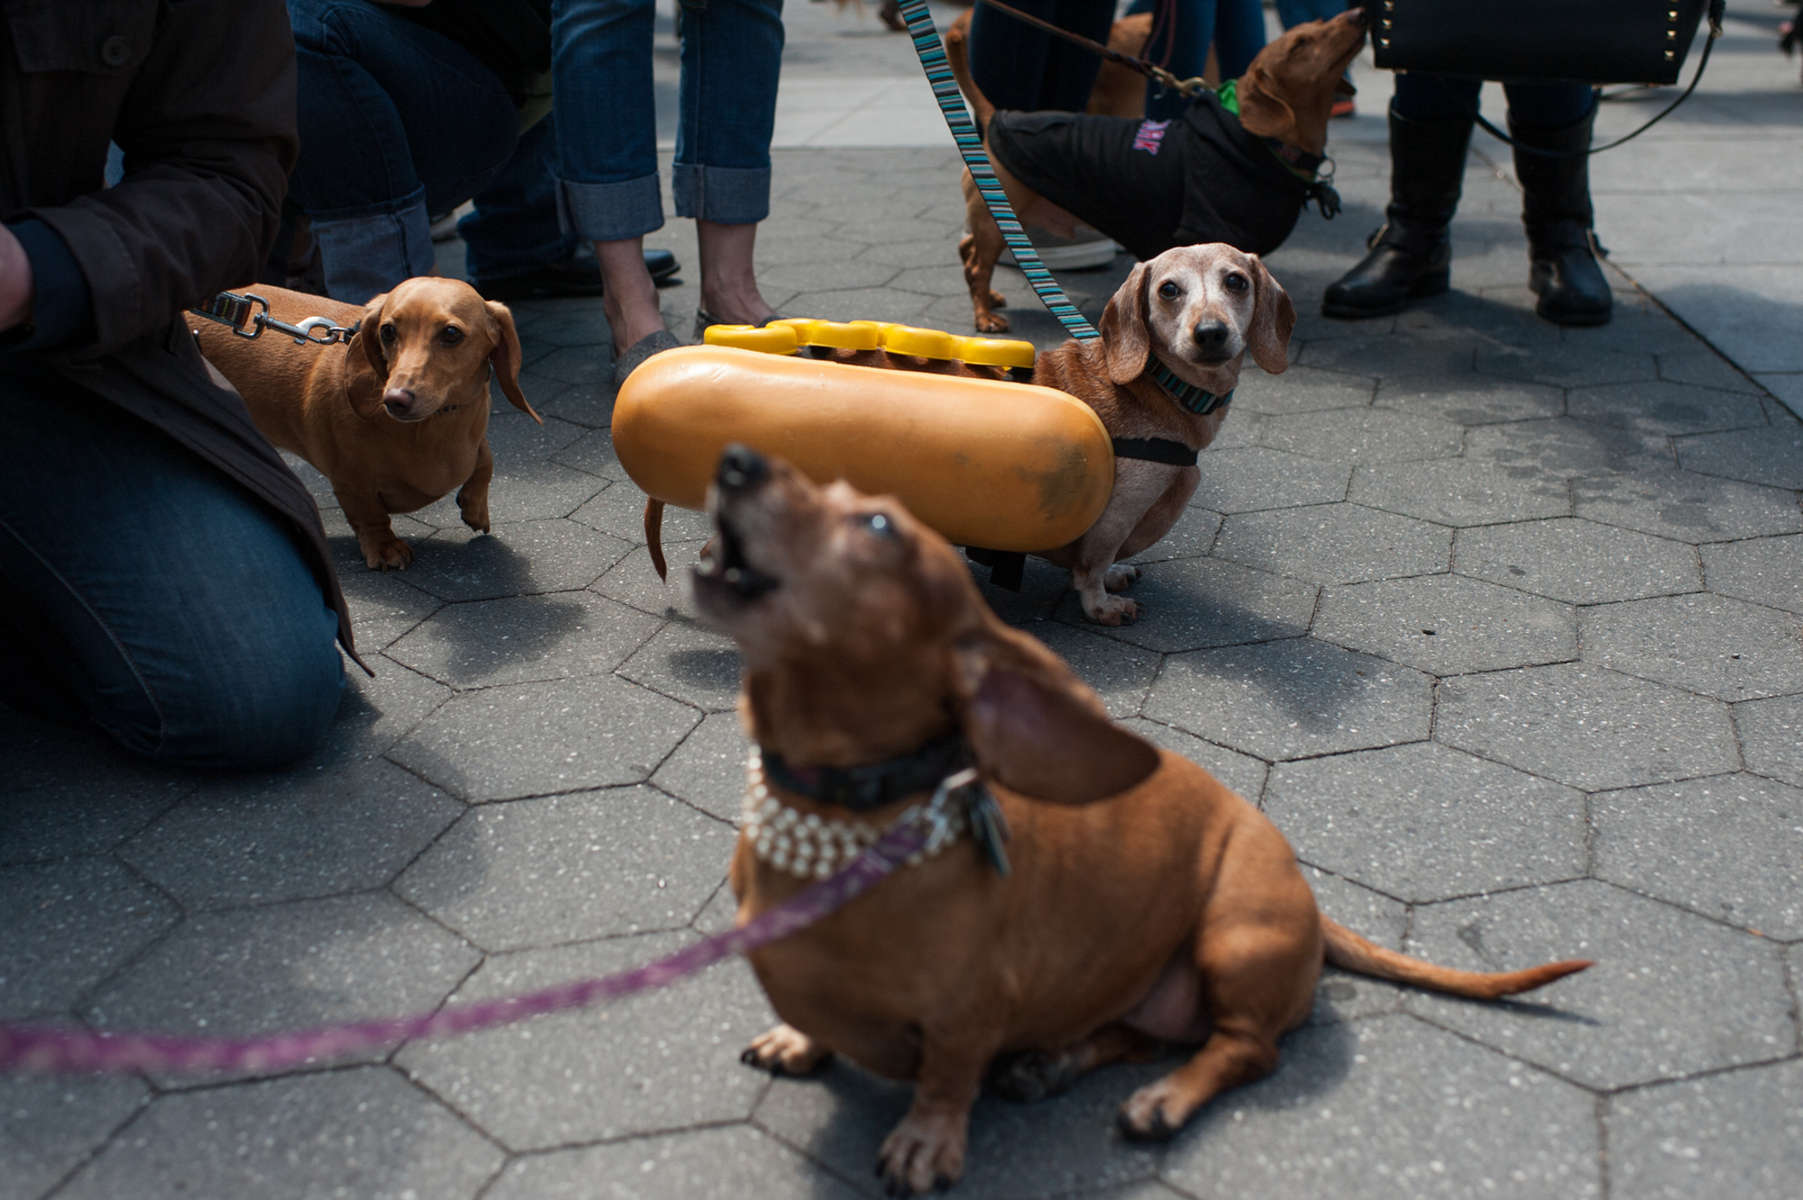 Stella, a thirteen-year-old Dachshund, makes a statement in her hot-dog costume at the Dachshund Friendship Club Spring Fiesta in Washington Square Park. (Apr. 26, 2014)Photo by Nancy Borowick